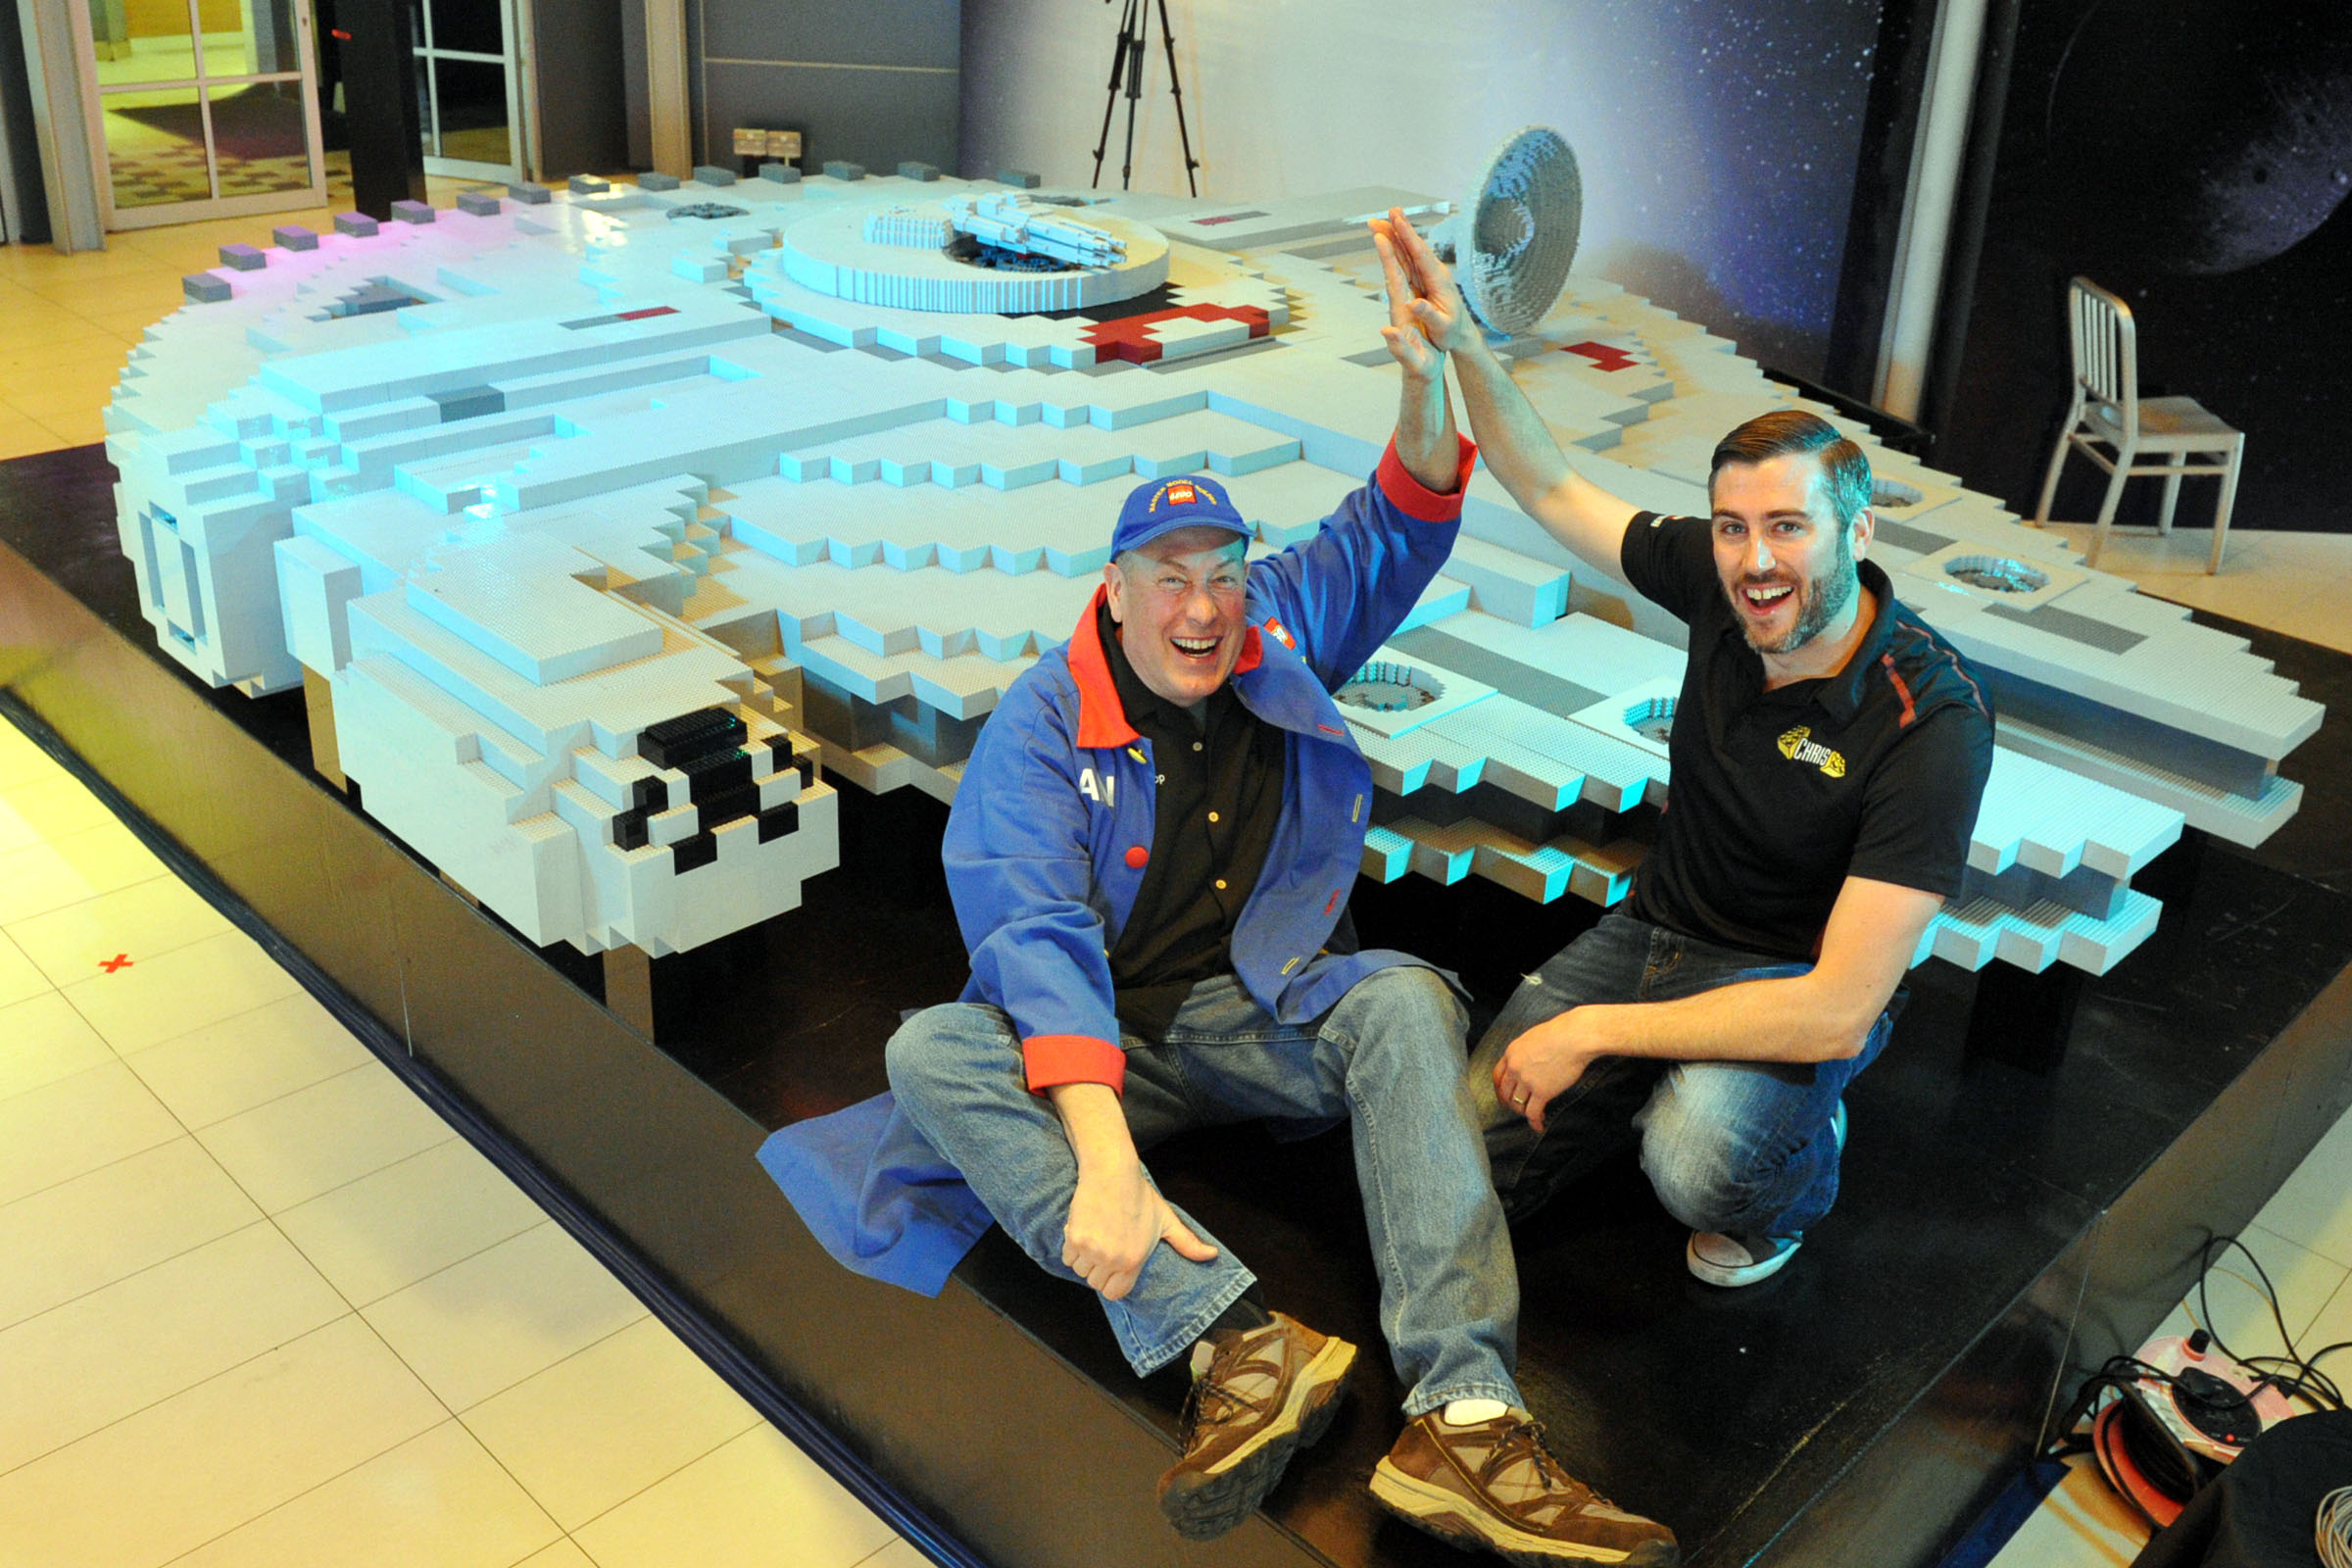 Dan and Chris Steininger elated at the completion of the LEGO replica of the Millennium Falcon. (Legoland Malaysia)